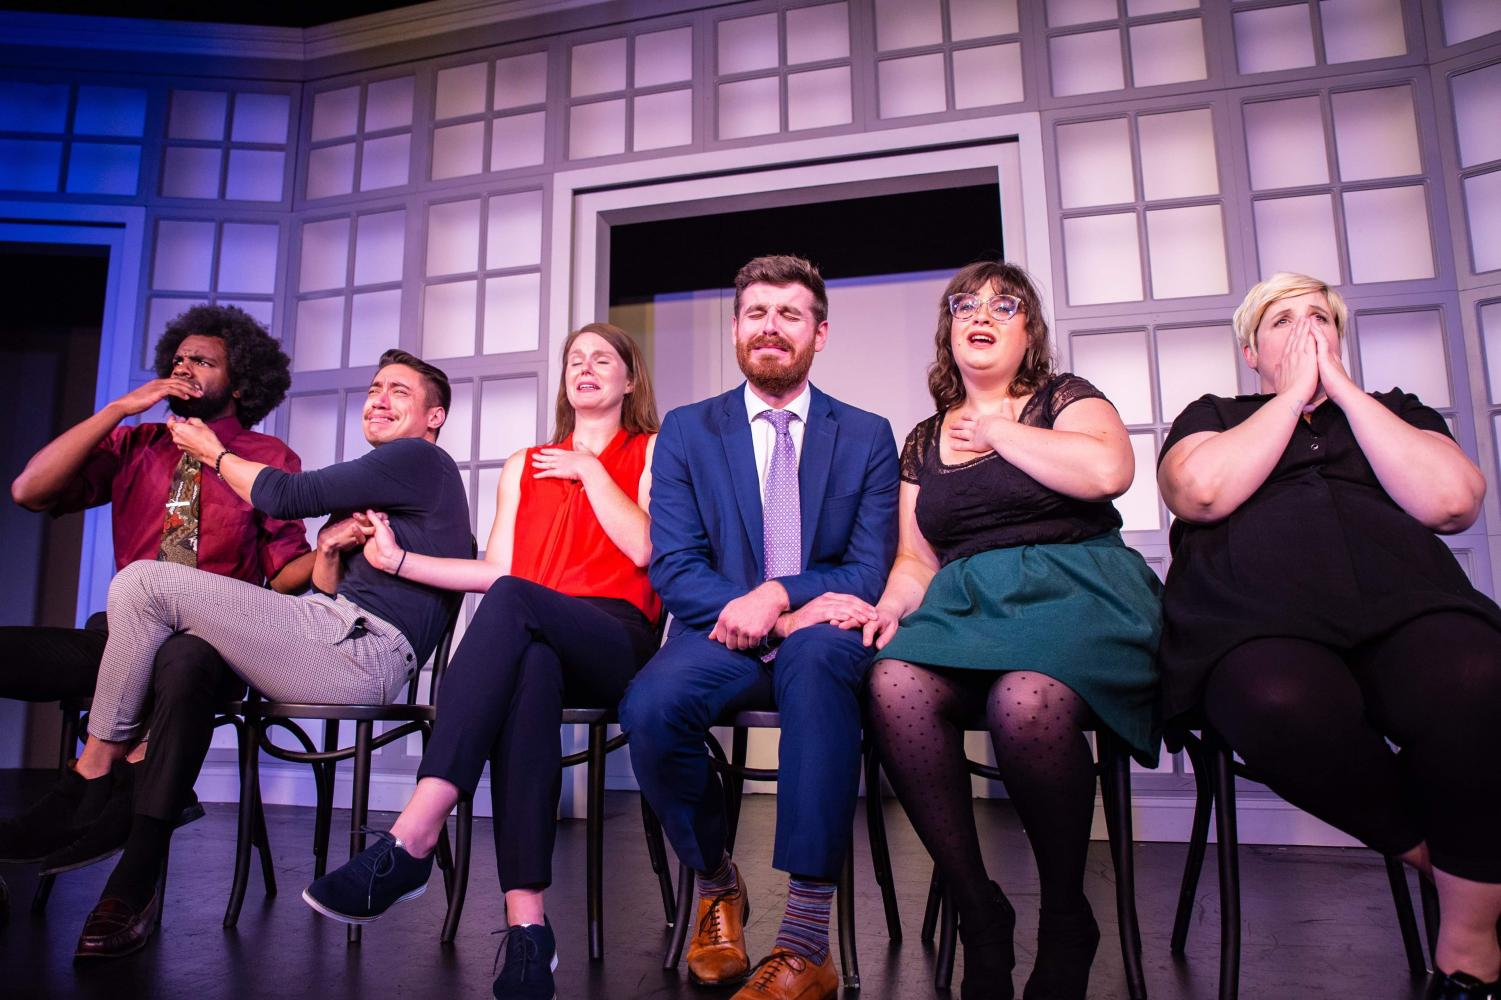 The Second City performed at Whitman on Oct. 17. The Chicago-based comedy company has been home to comedians like Tina Fey, Amy Poehler and Steve Carell.